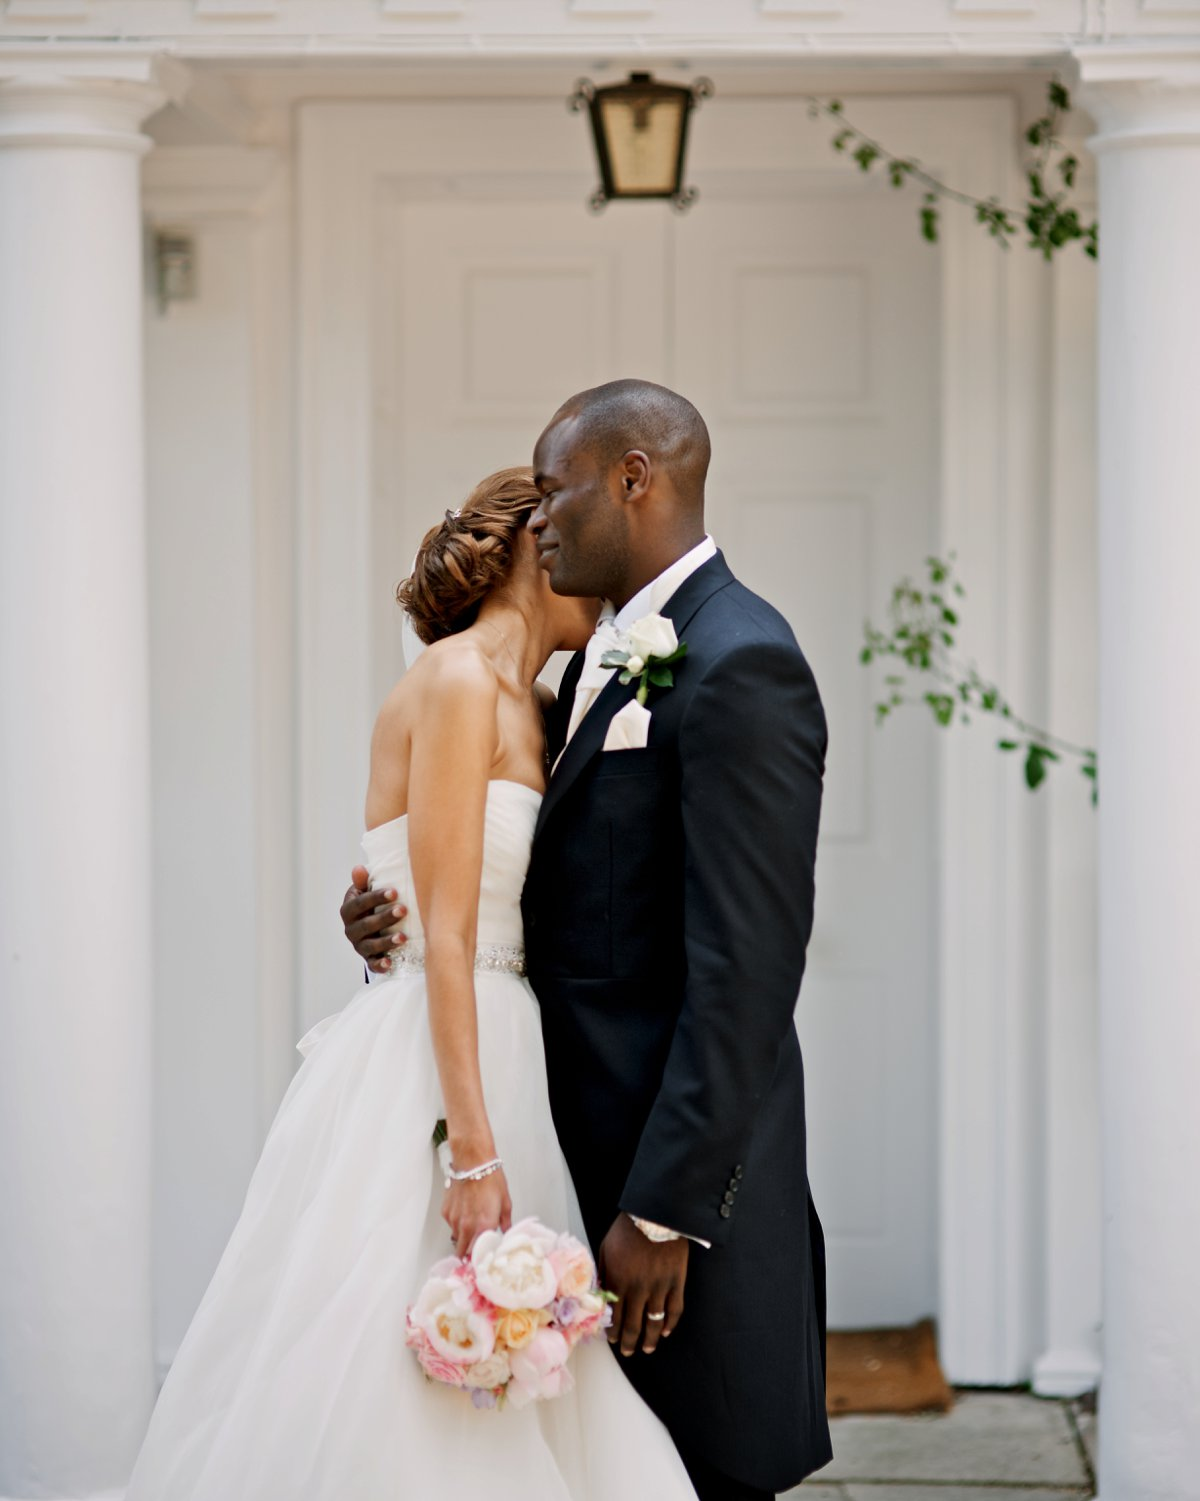 Northbrook Park Wedding Photographer Alexander Leaman Photography